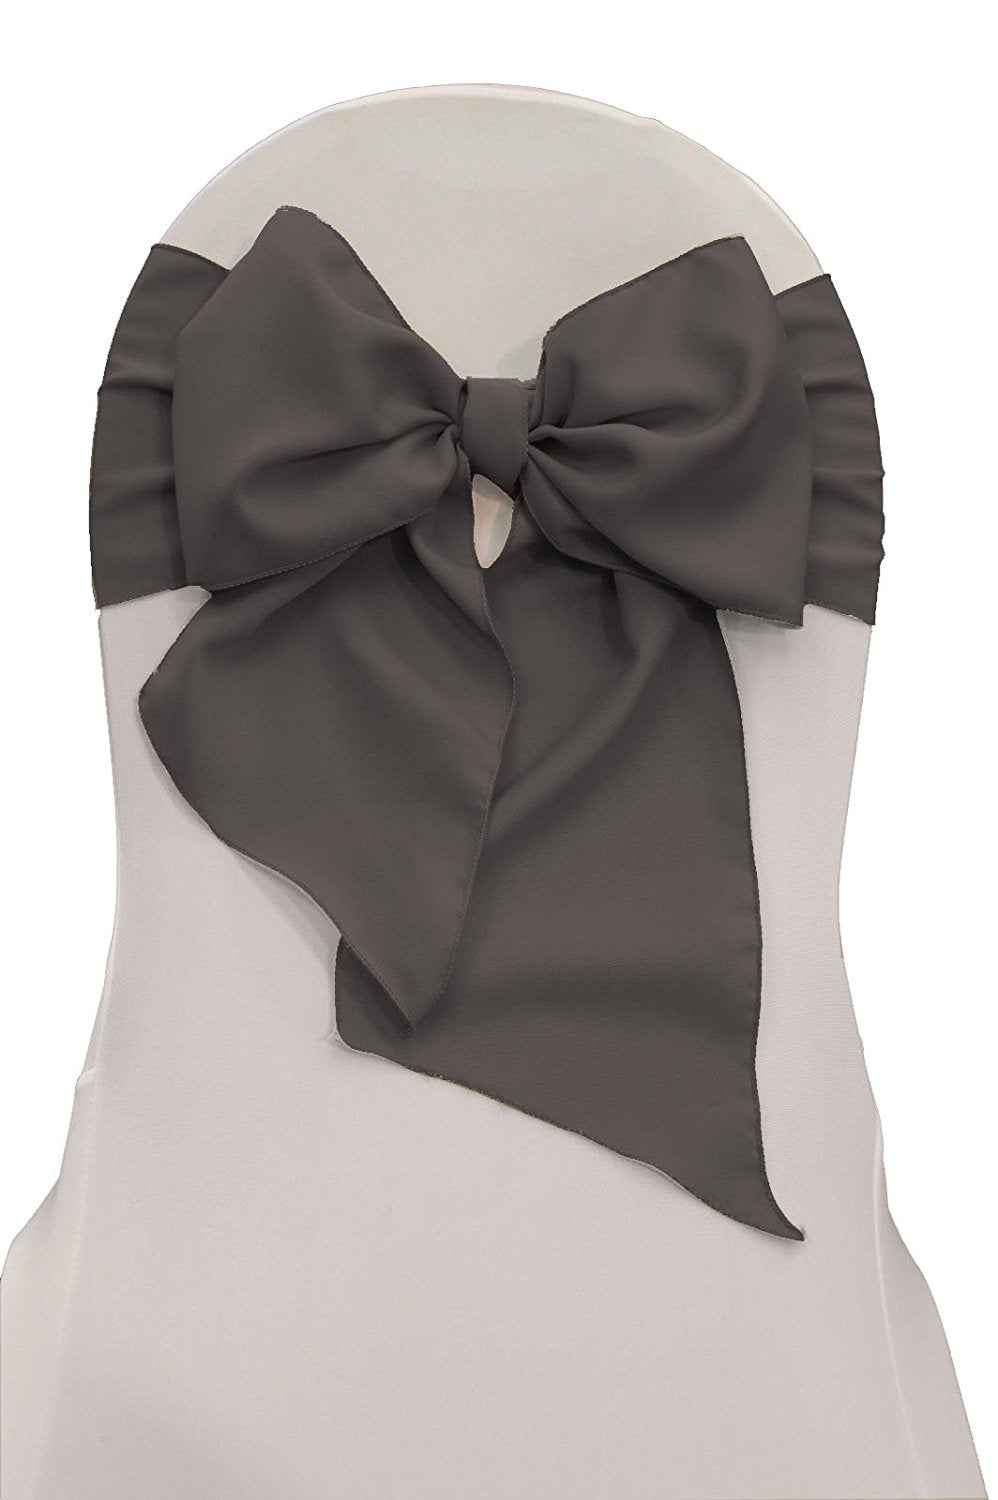 LA Linen Polyester Poplin Chair Bow Sashes, 7 by 108-Inch, Dark Gray, 10-Pack